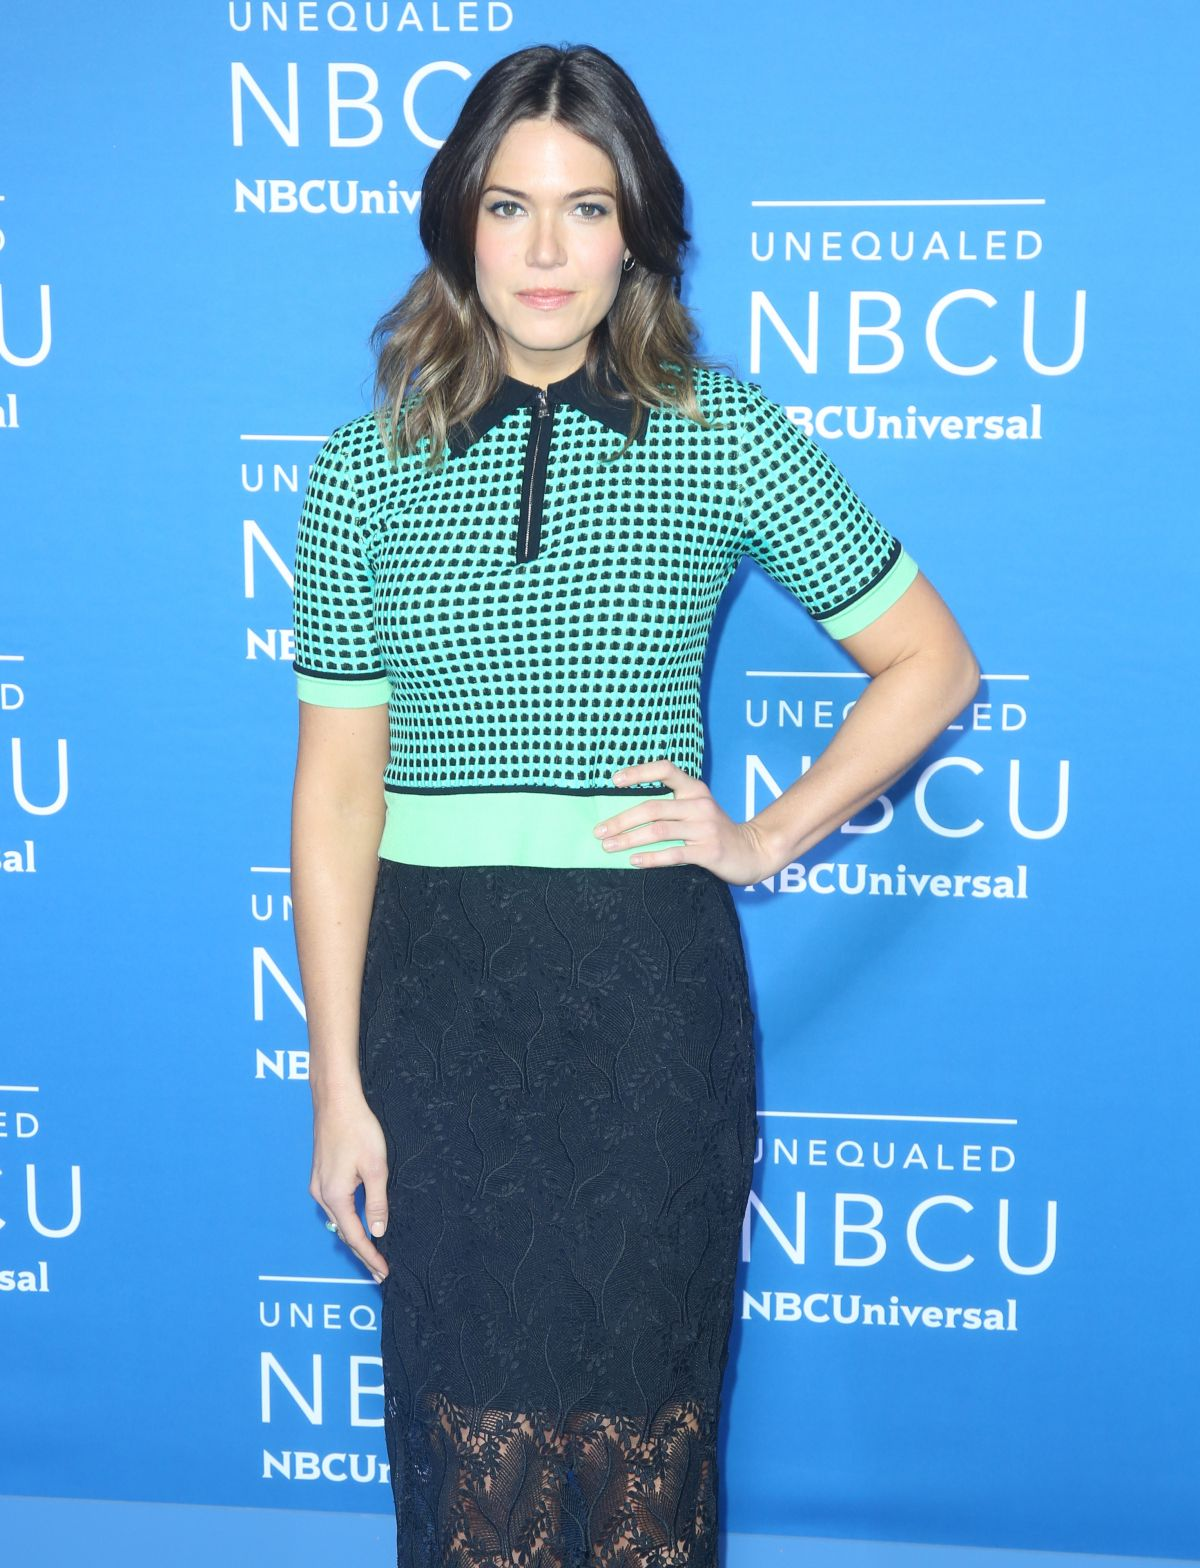 Mandy Moore At NBCUniversal Upfront in New York City   mandy-moore-at-nbcuniversal-upfront-in-new-york-city_12